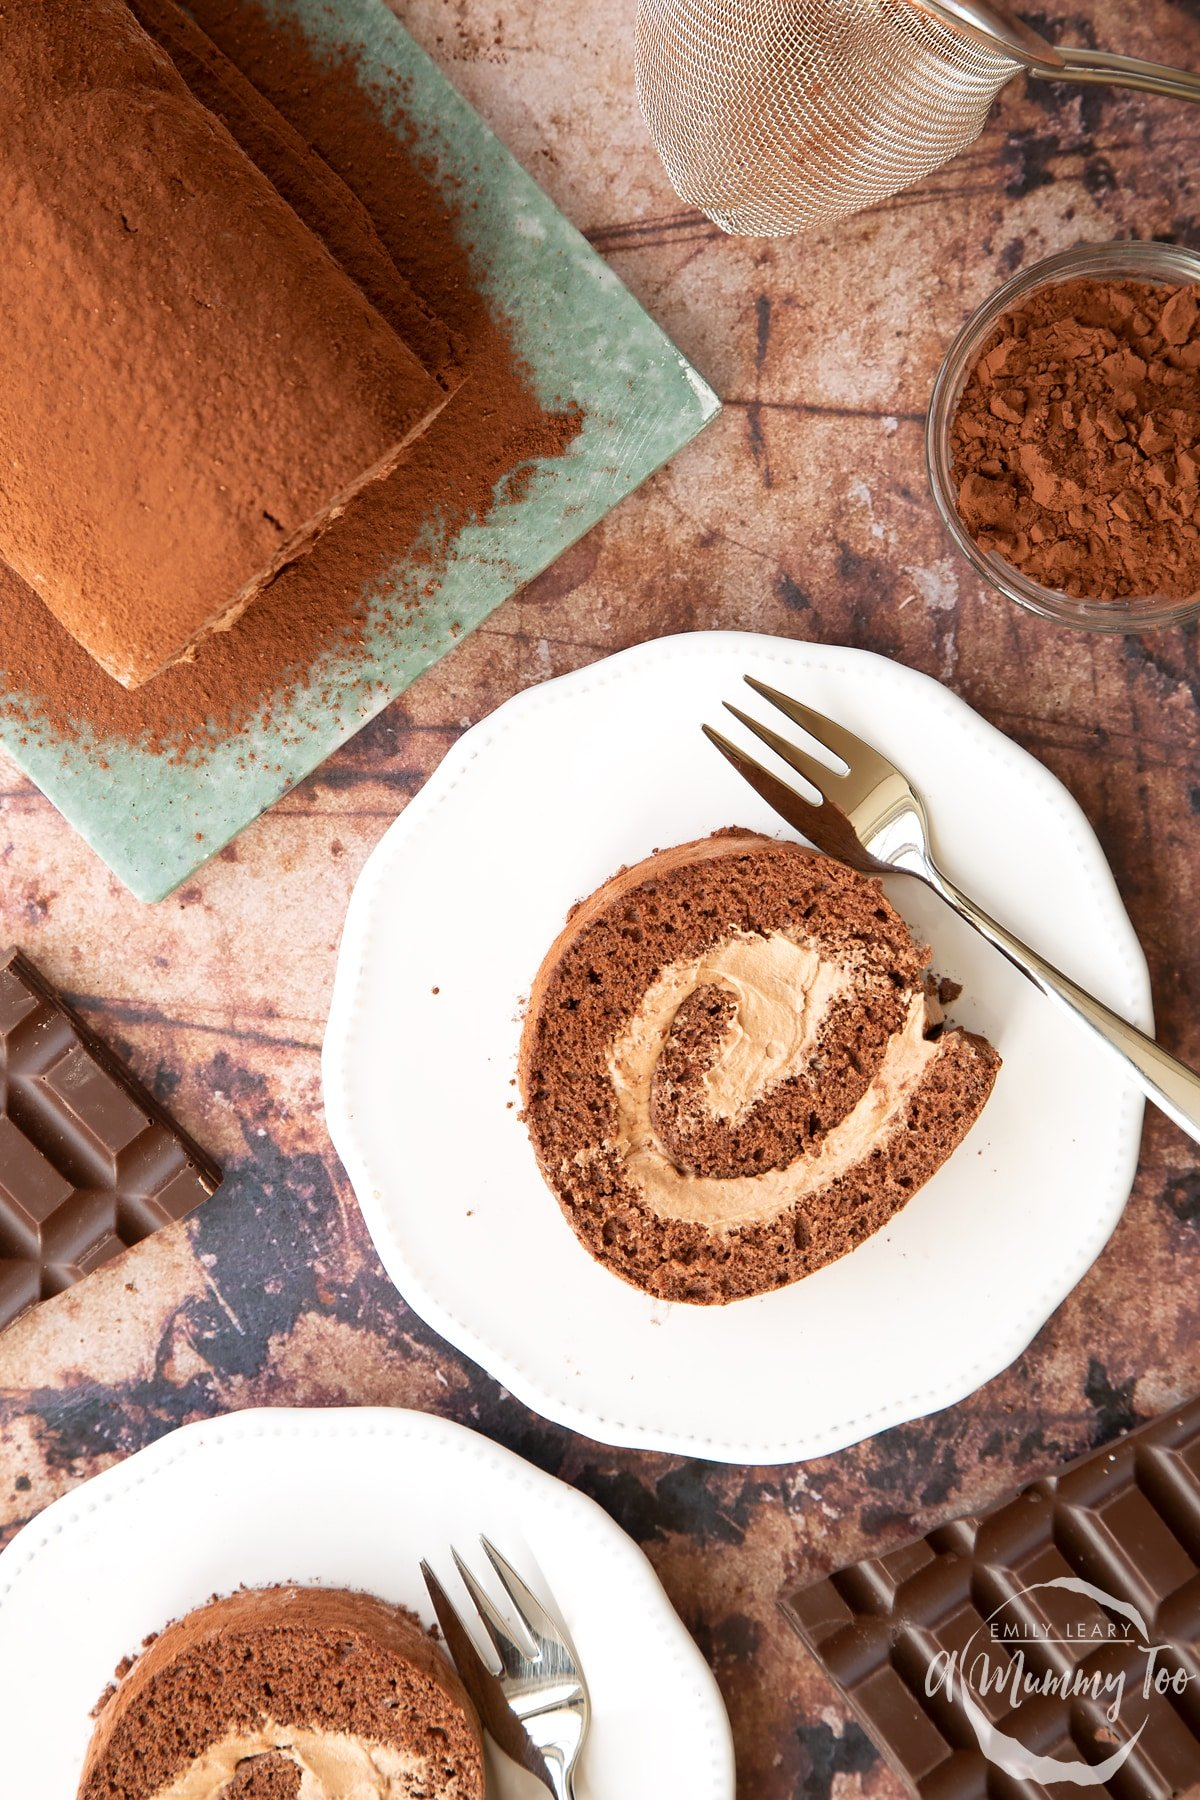 Two slices of Chocolate Swiss roll on white plates with forks, shown from above.